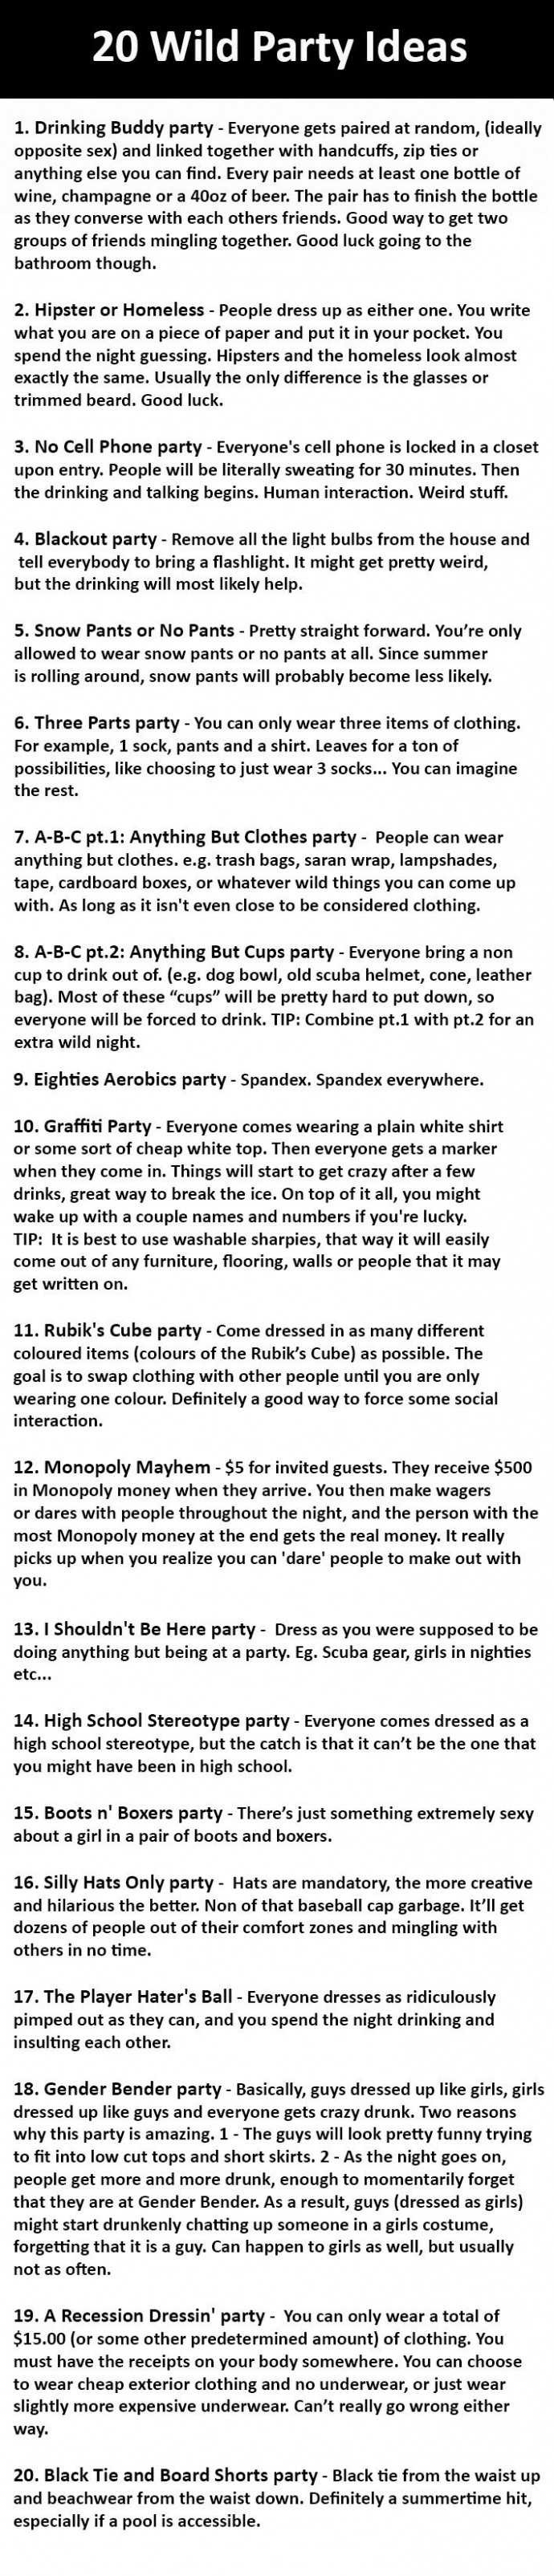 20 wild party ideas list